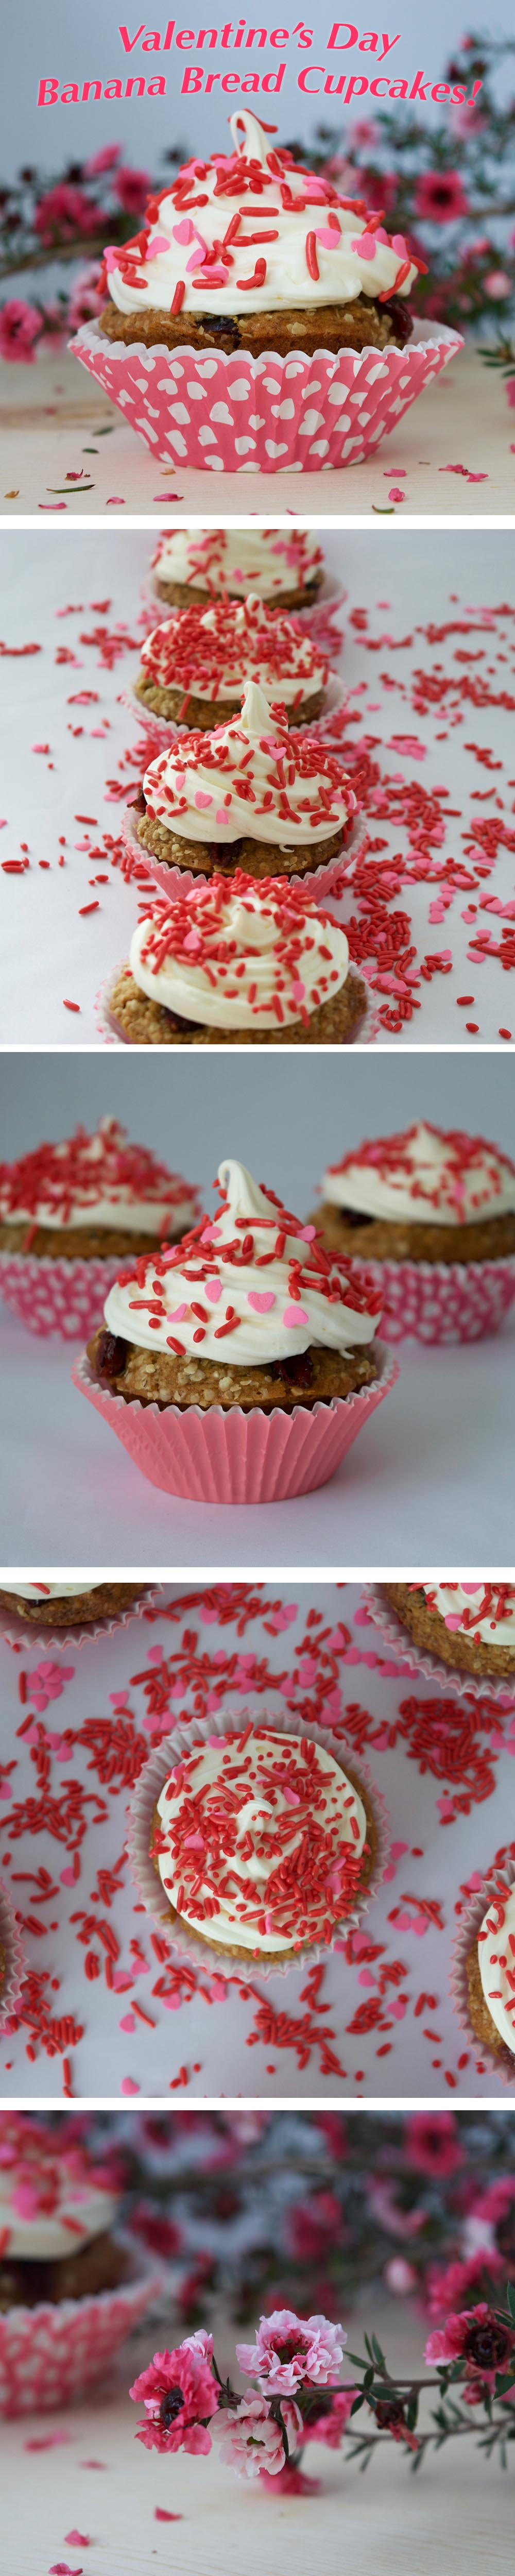 valentines day banana bread muffin treat cupcakes